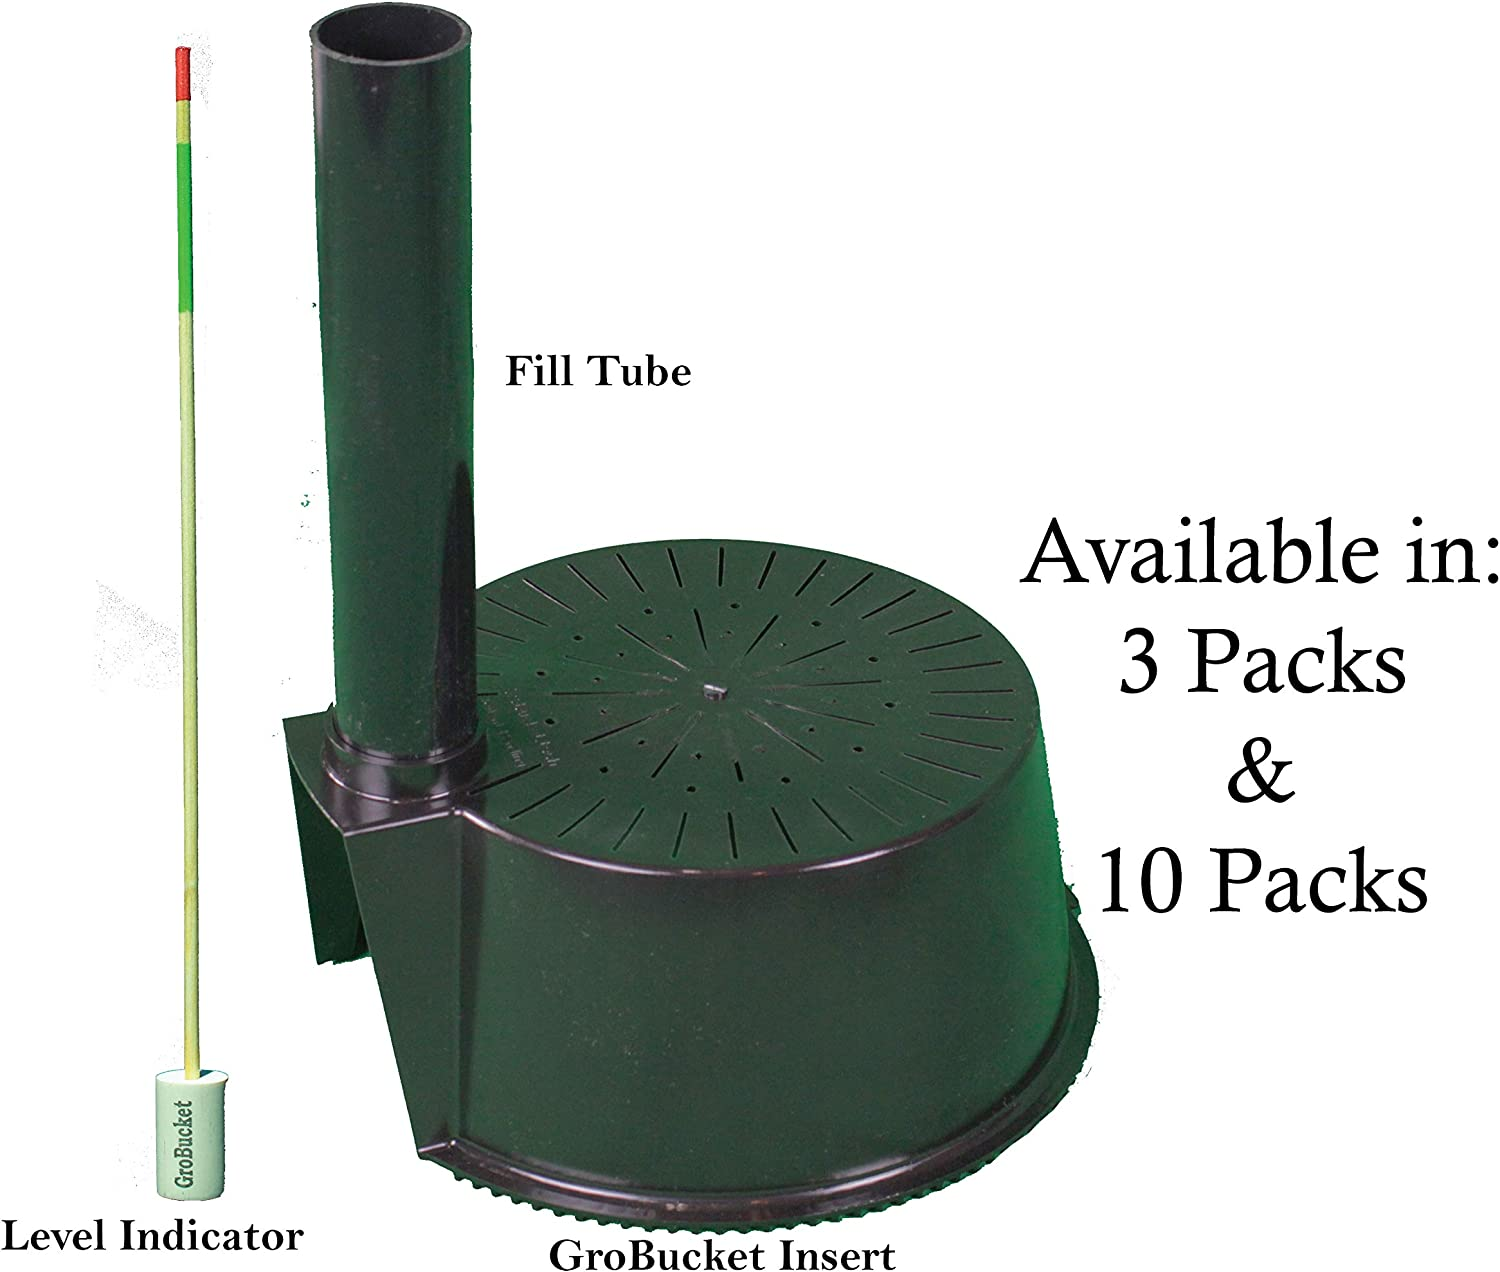 GroBucket Garden Kit 3PK Self Watering sub-irrigated planter insert. Turn any bucket into a Self Watering Container Garden. Create an indoor or outdoor, space saving and portable garden in minutes.